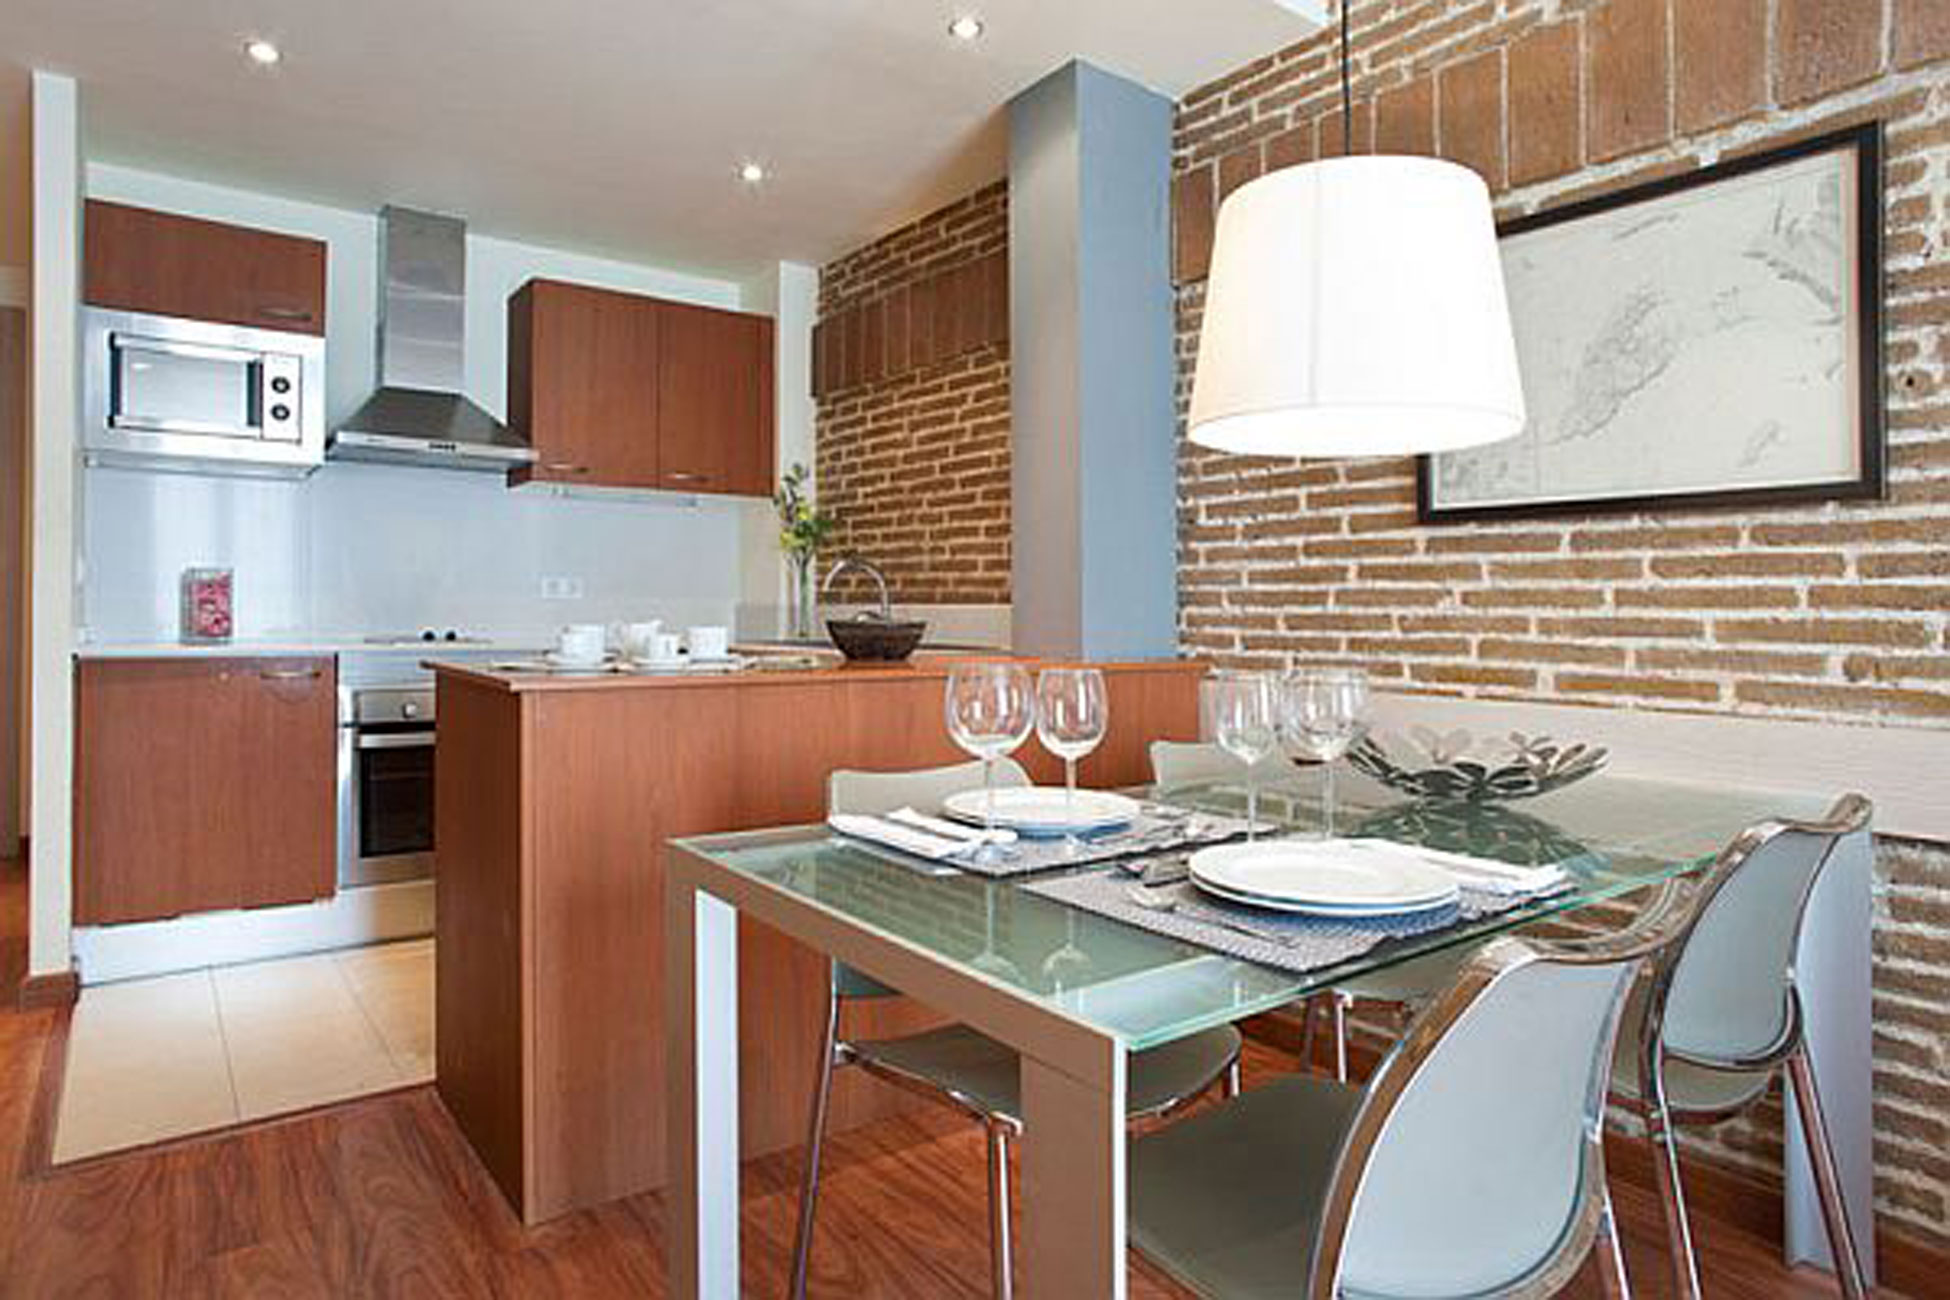 Warmth and Comfy Apartment Ideas In 55 Square Meter of Barcelona - Kitchen